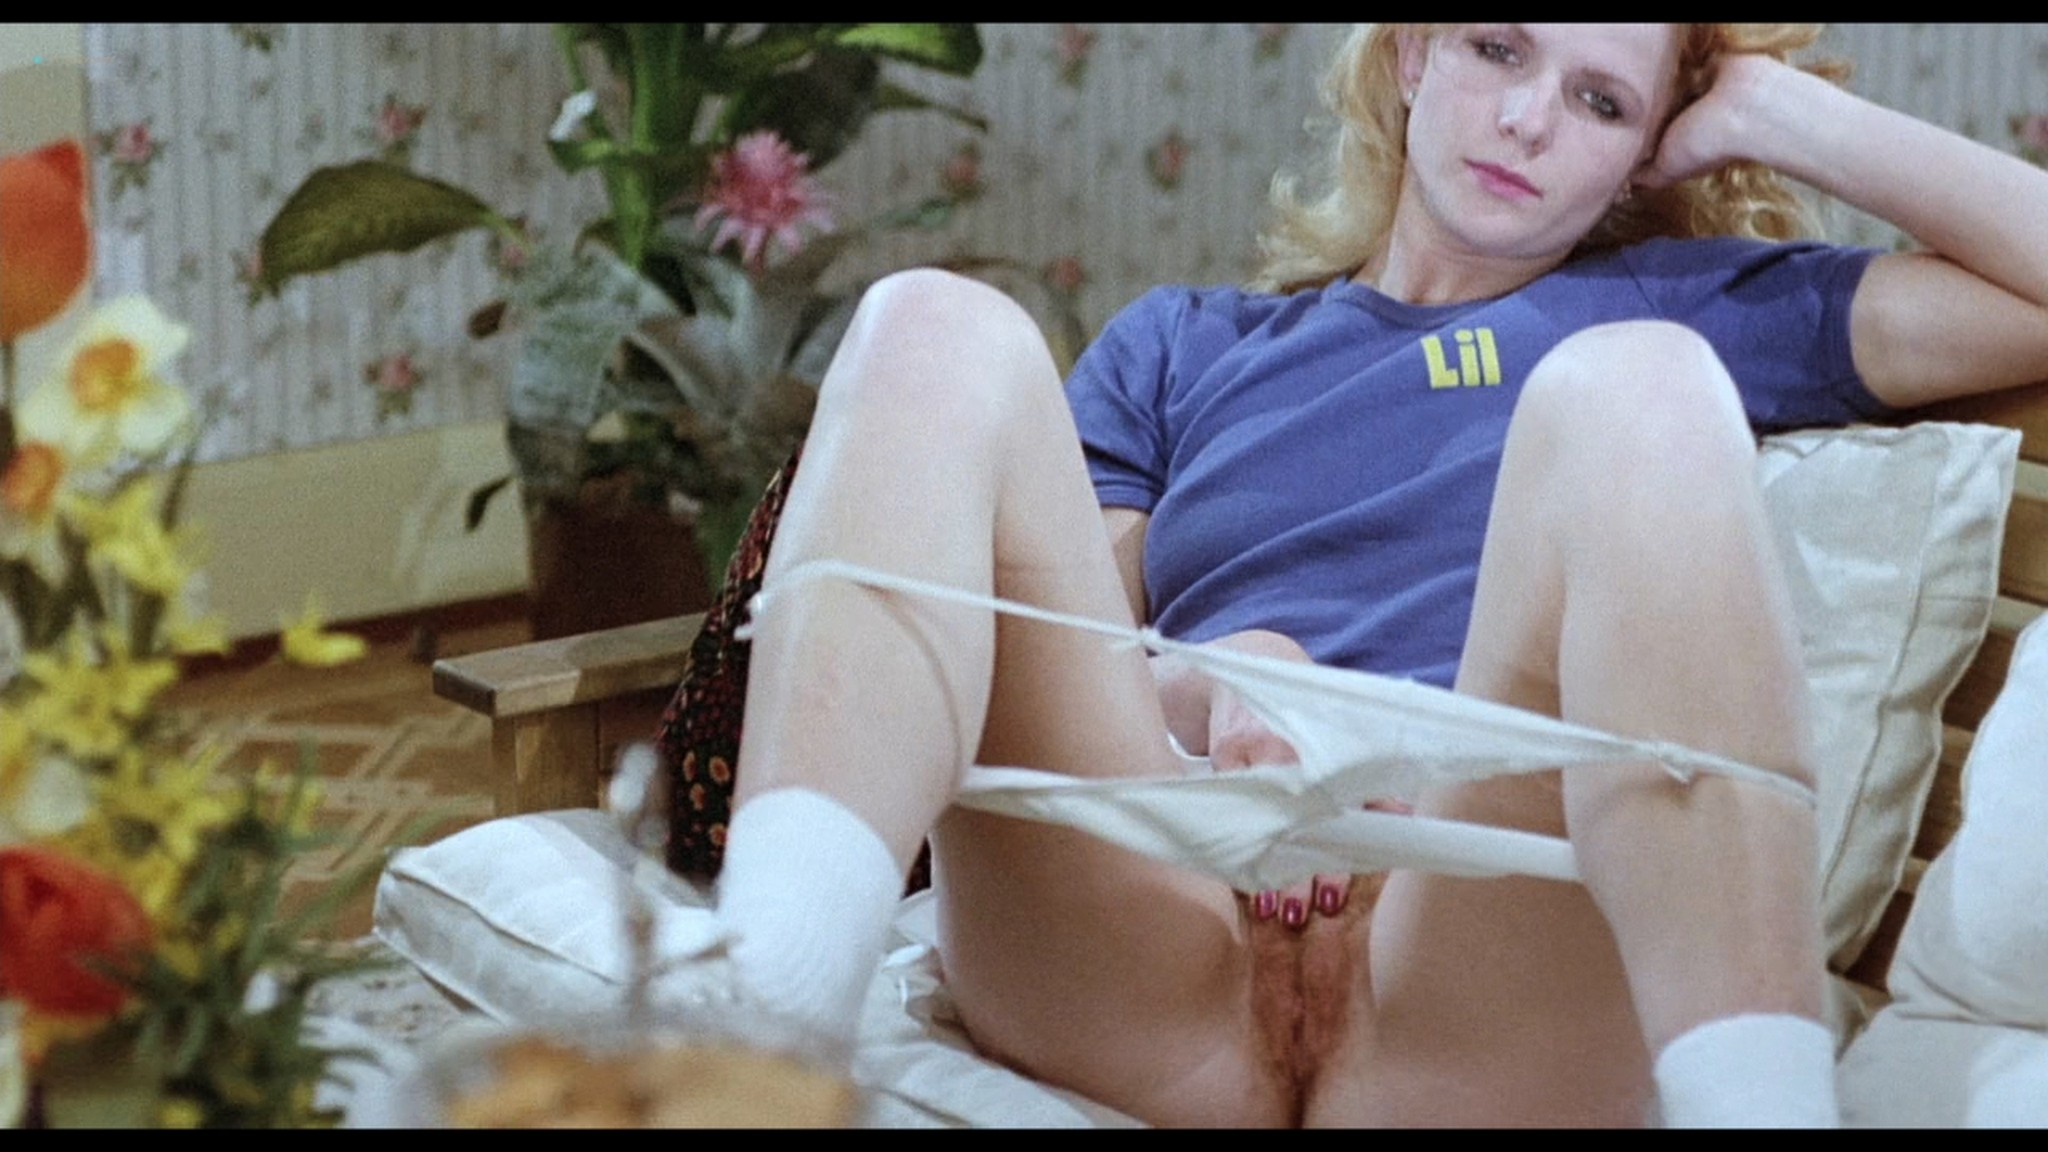 Brigitte Lahaie nude sex Elsa Maroussia and other lots of sex - Swedish Gas Pump Girls (1980) HD 720p BluRay (22)